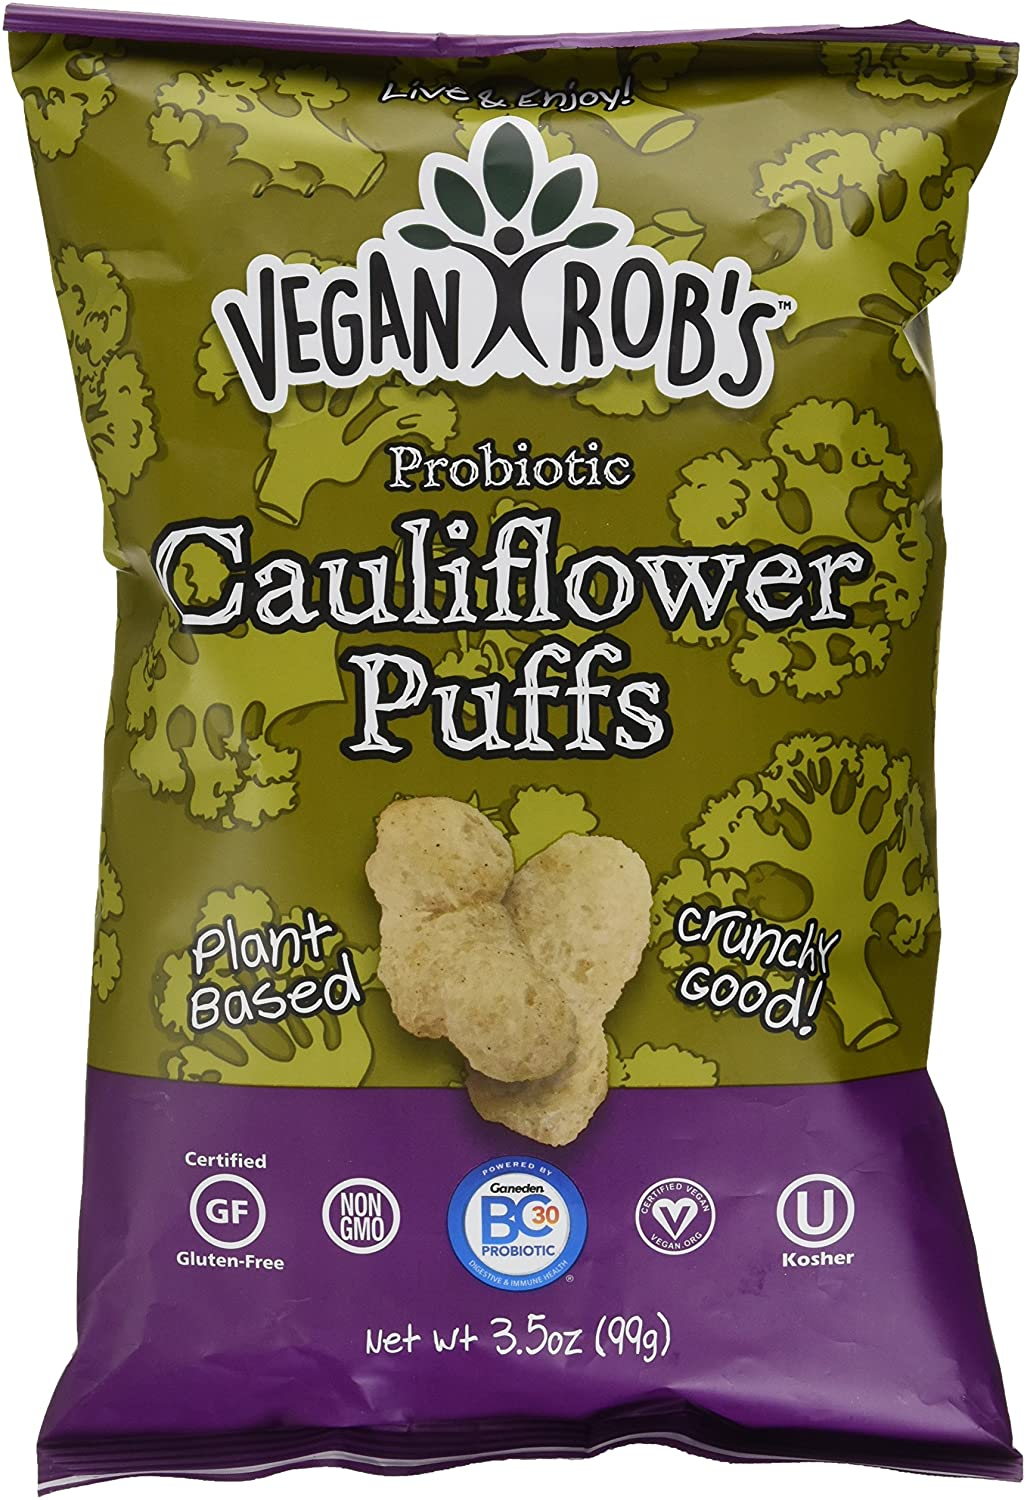 Vegan Rob's Probiotic Cauliflower Puffs 99g